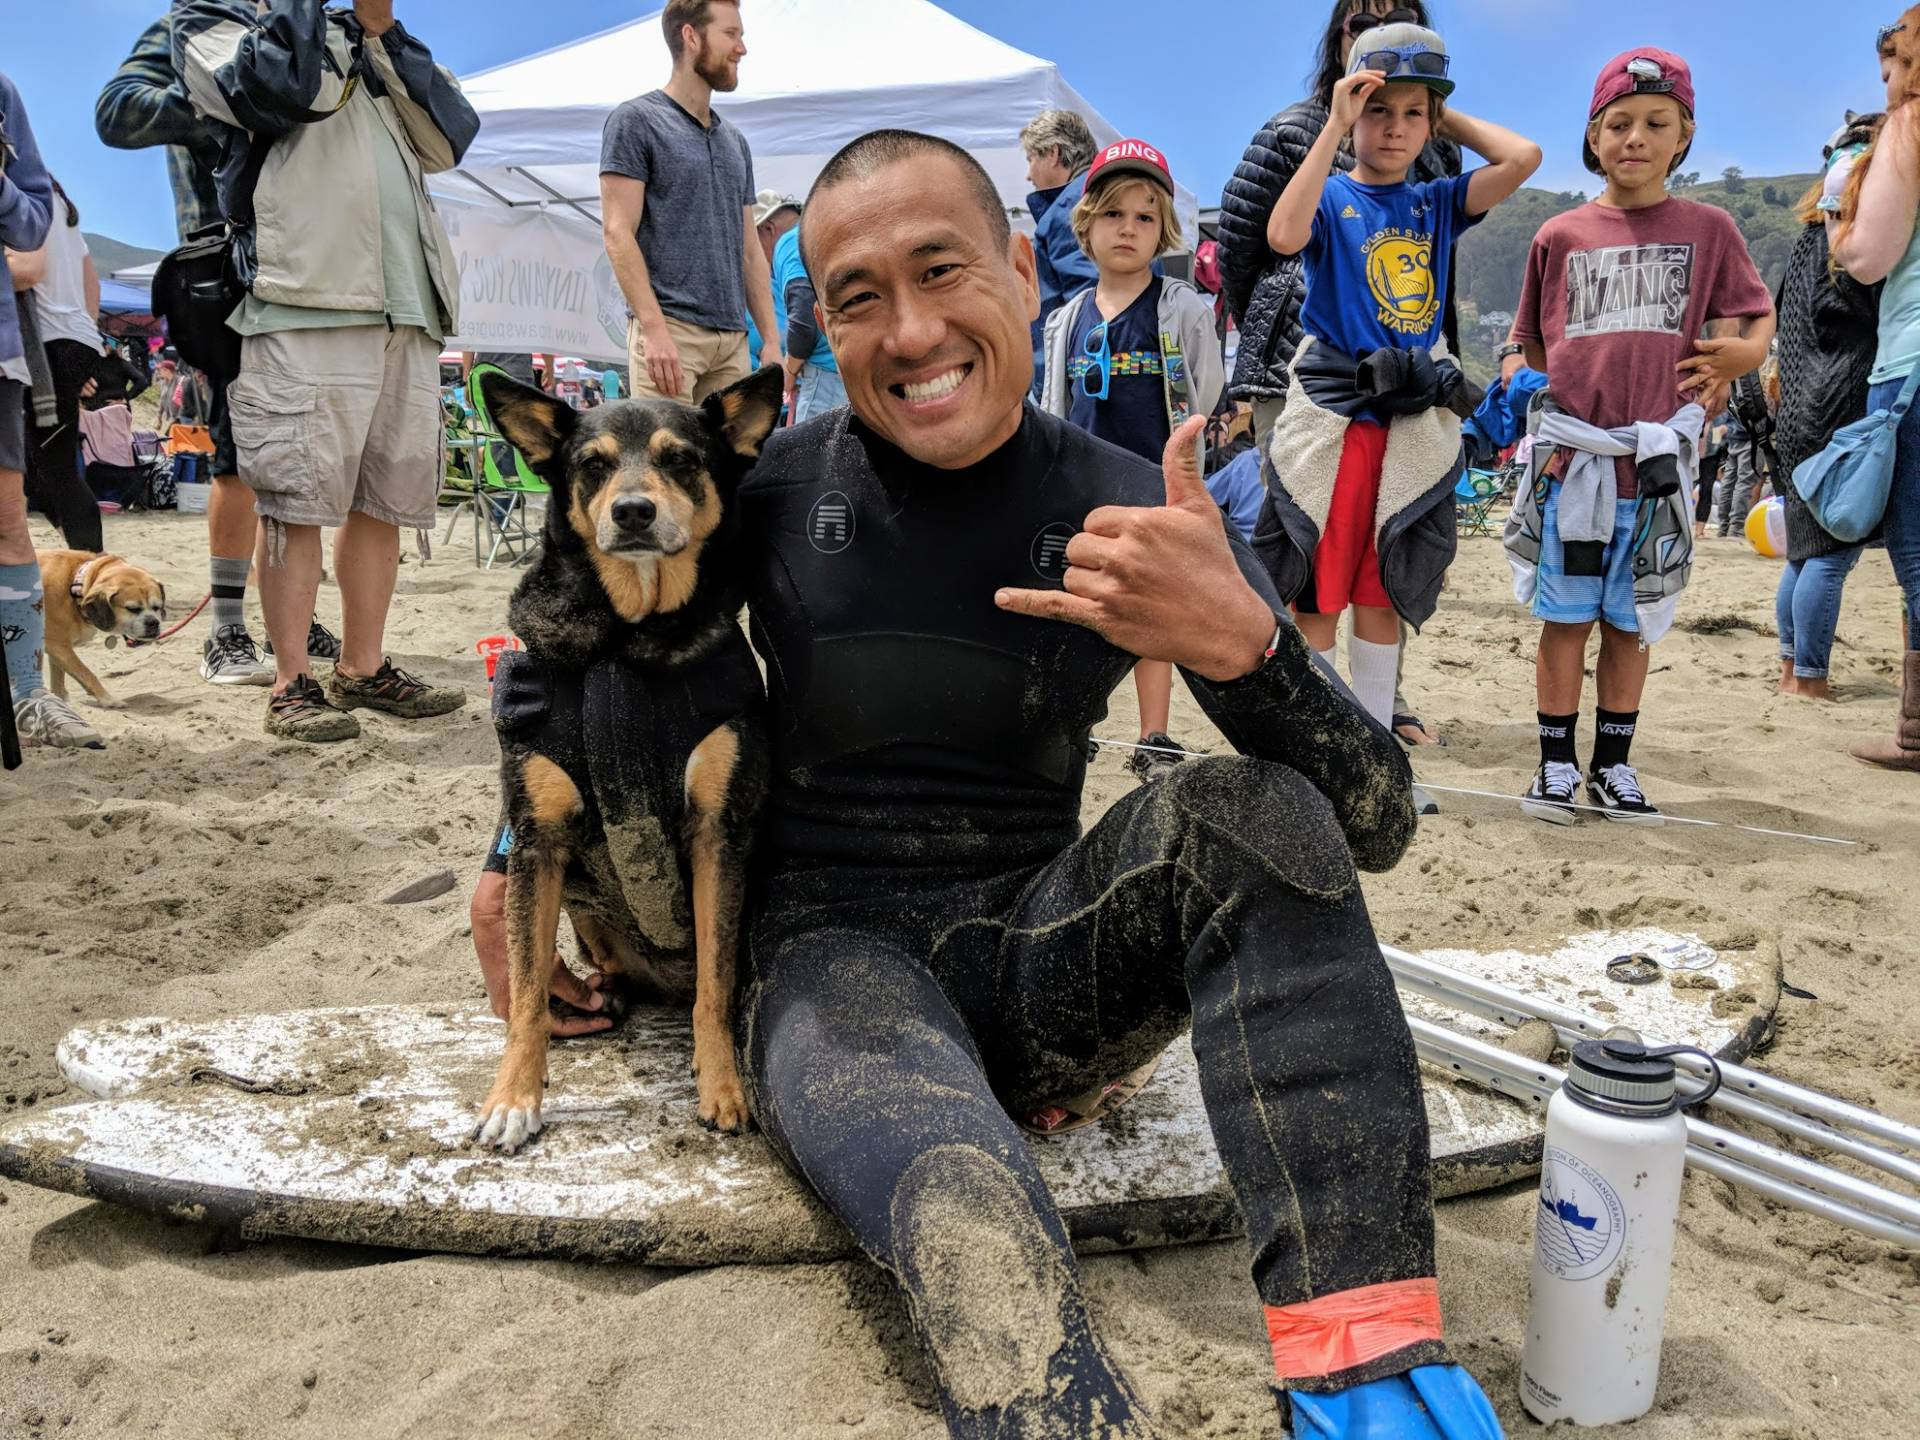 "Michael Uy and his dog Abbie Girl are here from Santa Monica. Abbie is the returning champ and also has the Guinness World Record for longest wave surfed by a dog - a total of 107 meters. ""You can really tell the bond you have with your dog when you go out surfing together."""